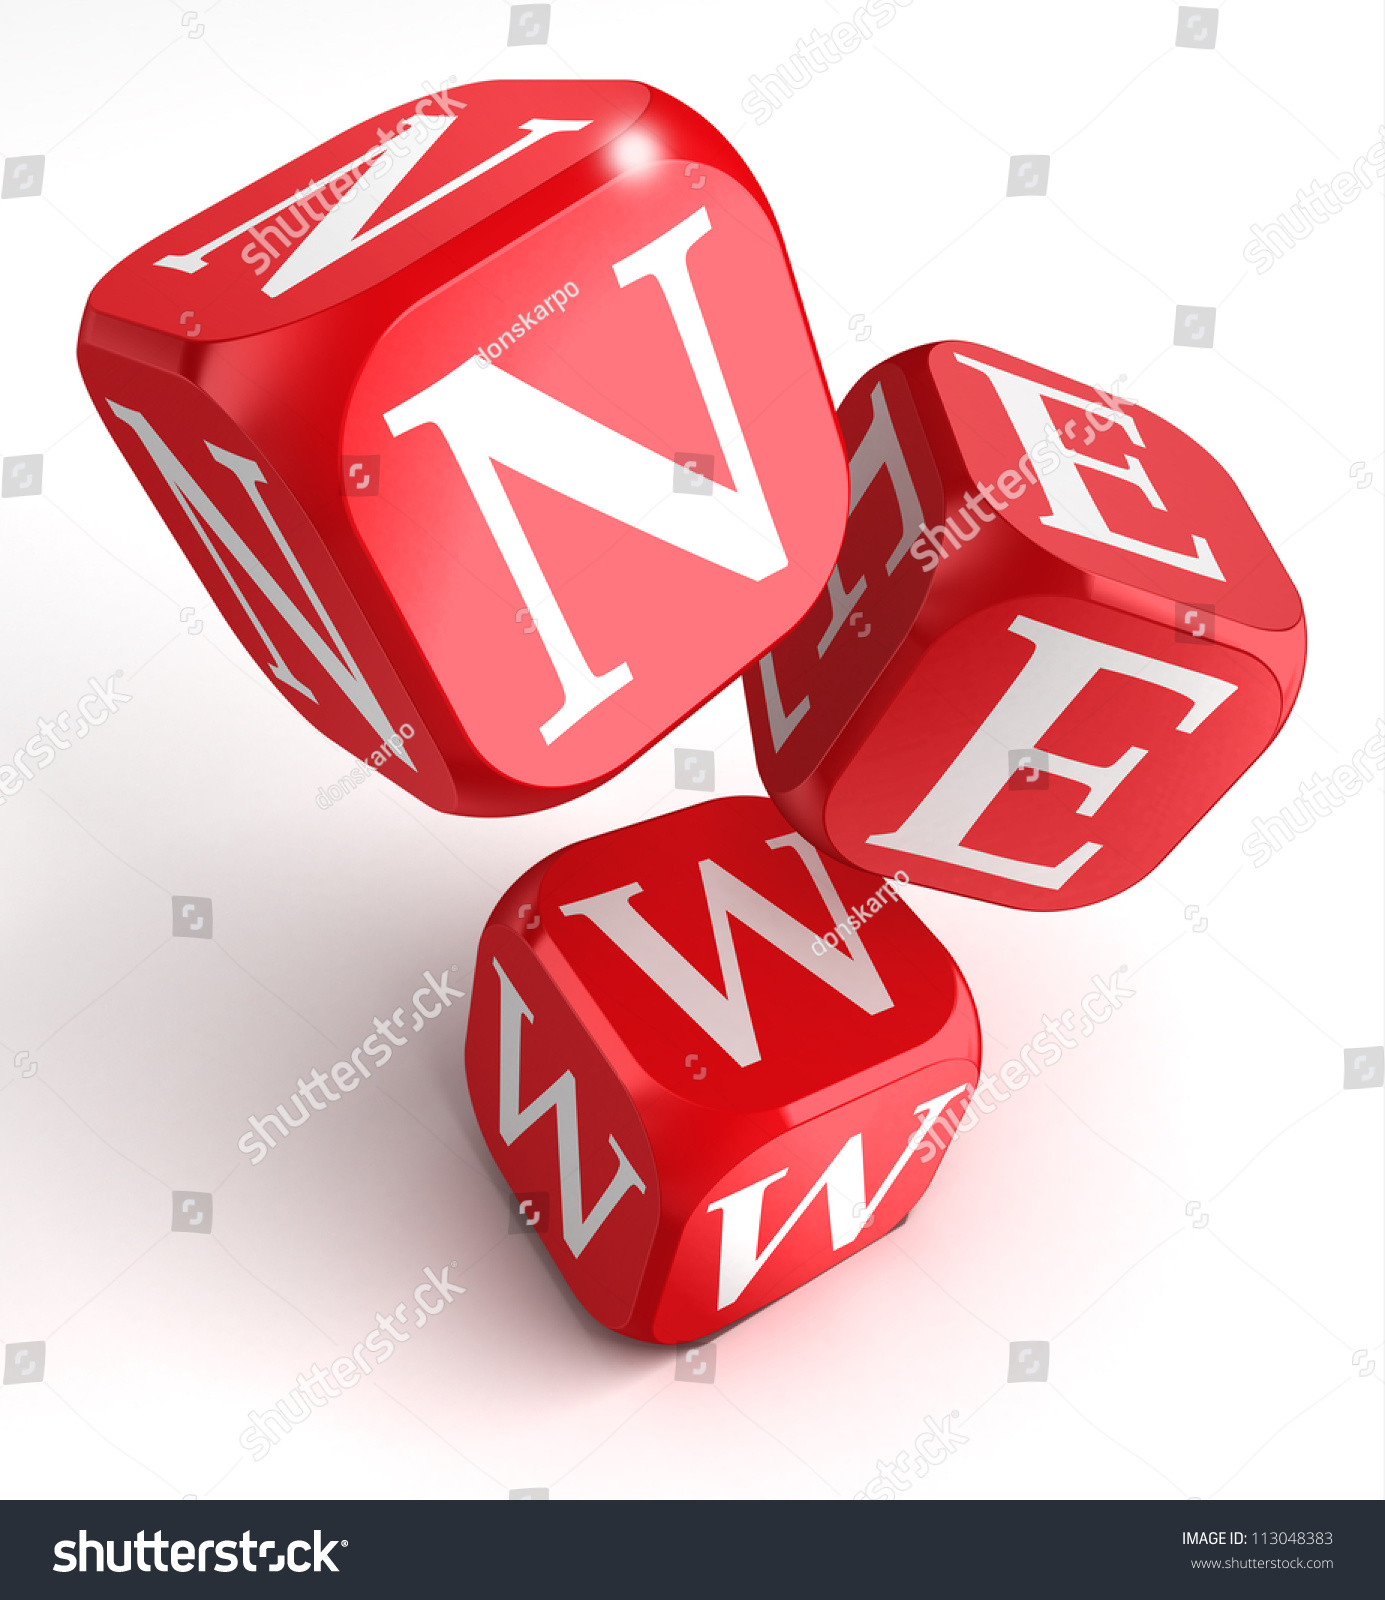 New Word On Red Box Dice Stock Illustration 113048383 - Shutterstock